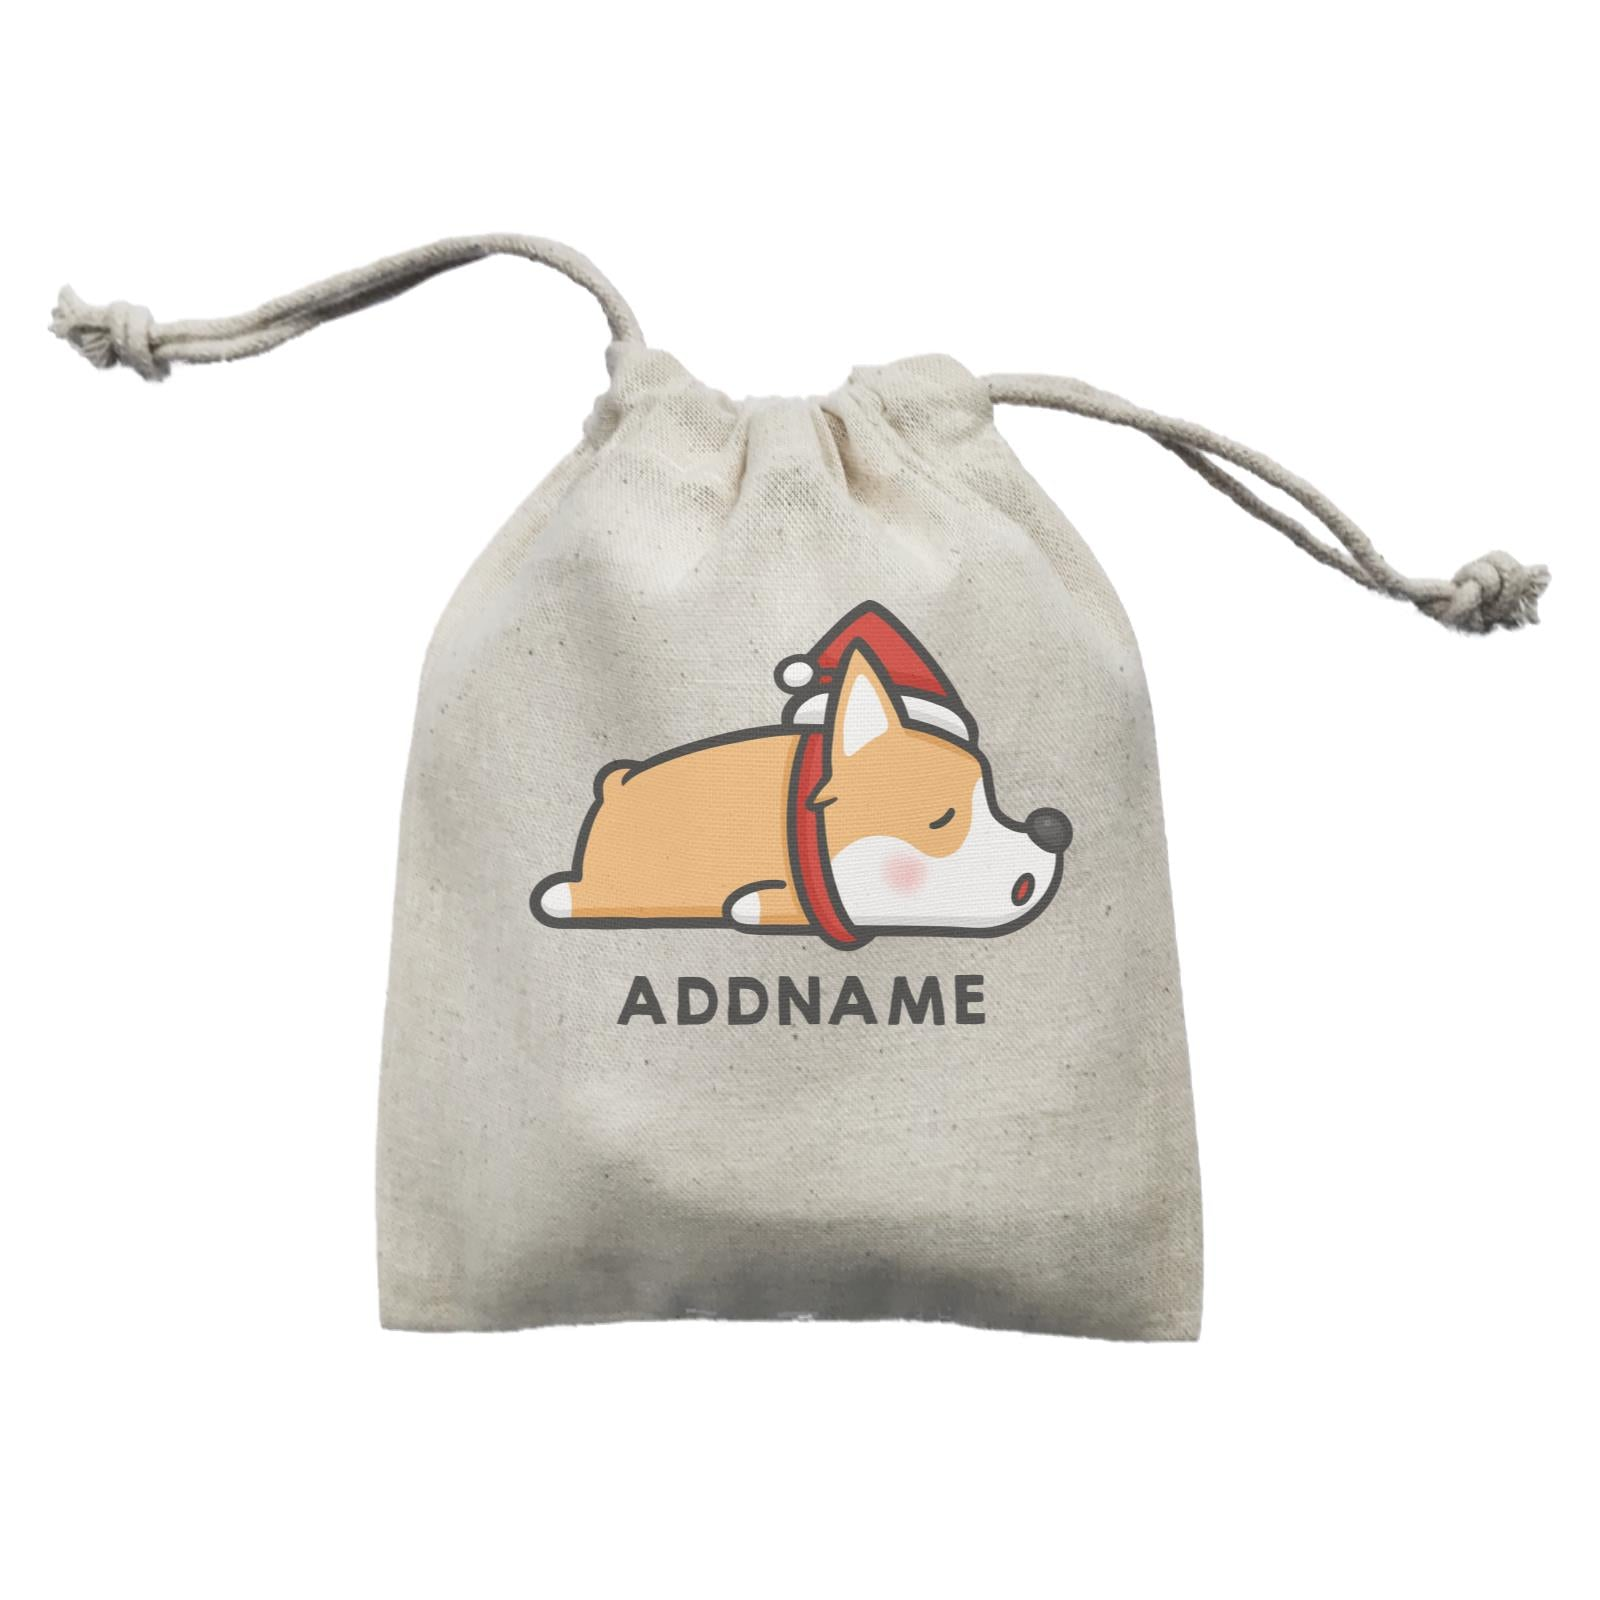 Xmas Cute Sleeping Corgi Addname Mini Accessories Mini Pouch